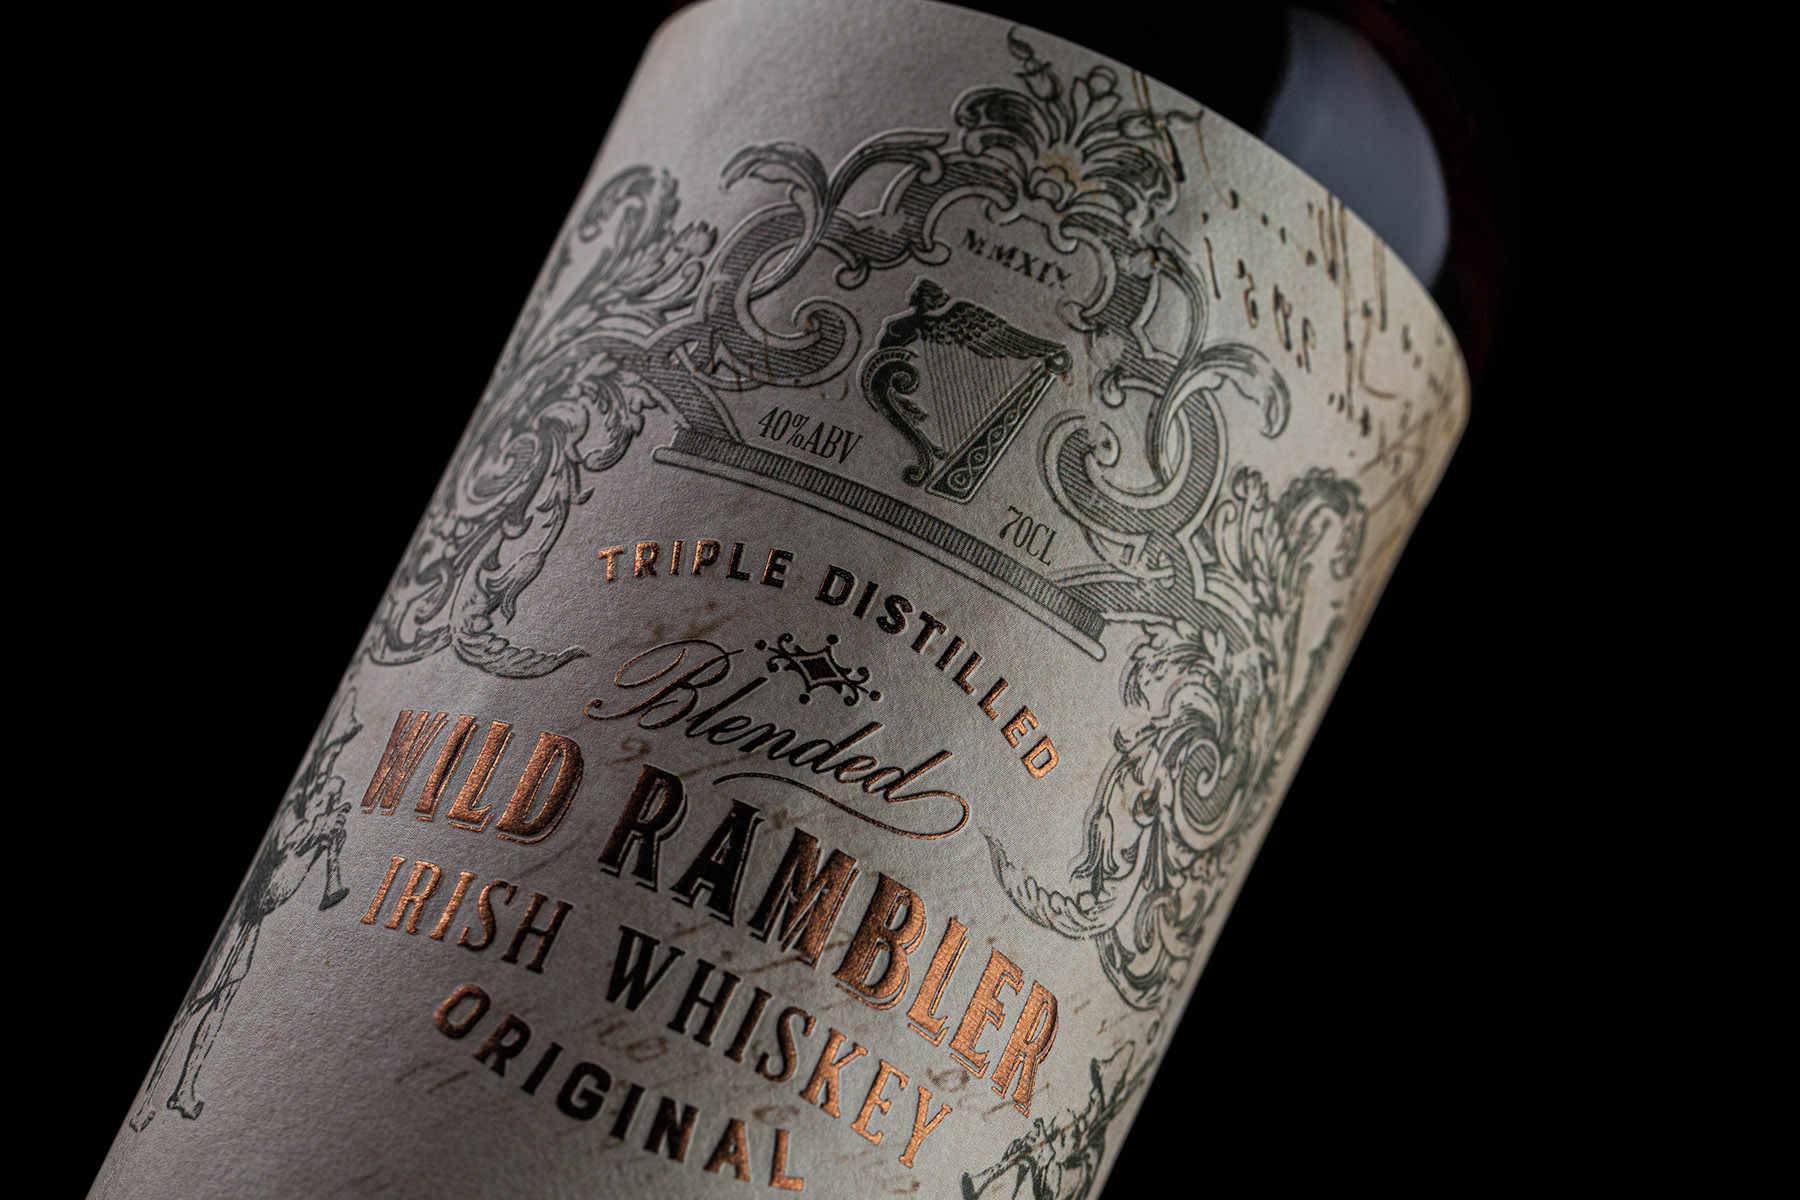 Wild Rambler Irish Whiskey